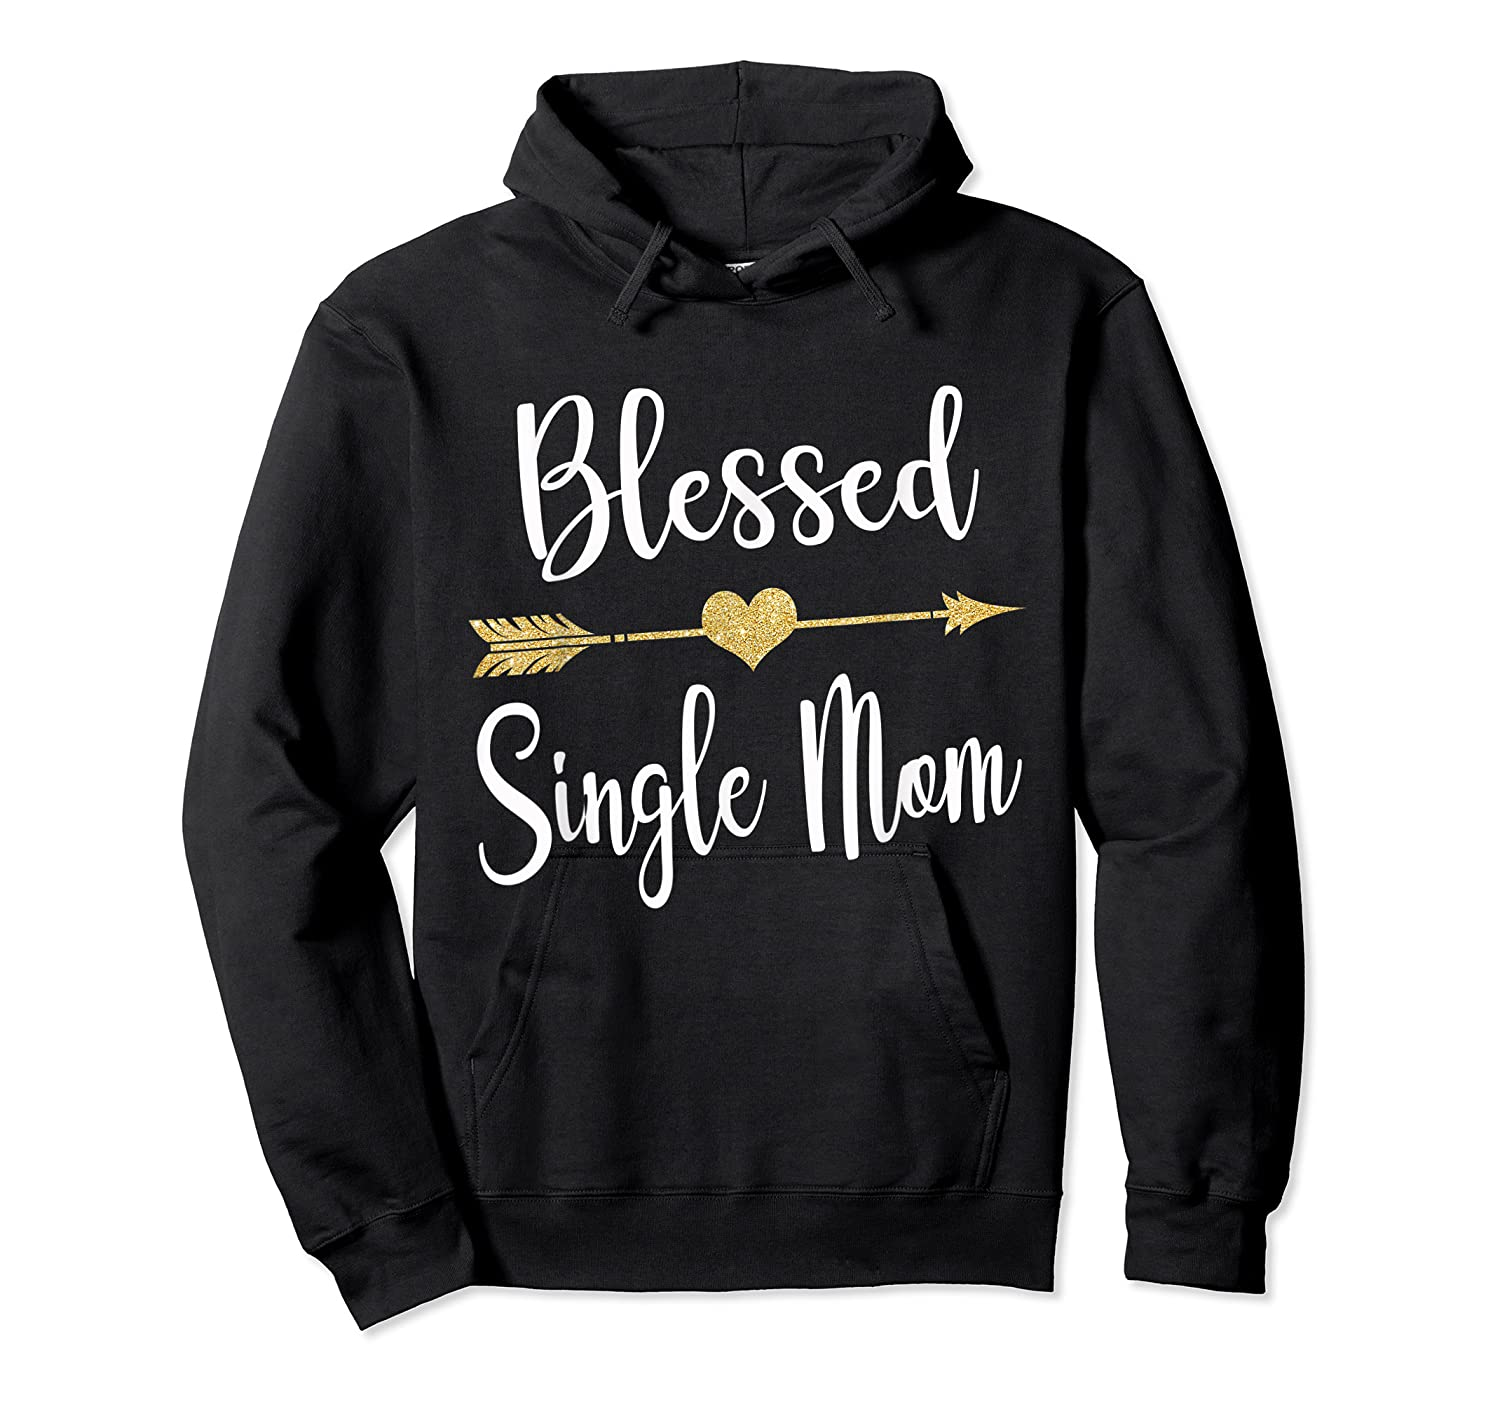 Funny Arrow Blessed Single Mom T Shirt Gift For Thanksgiving Unisex Pullover Hoodie